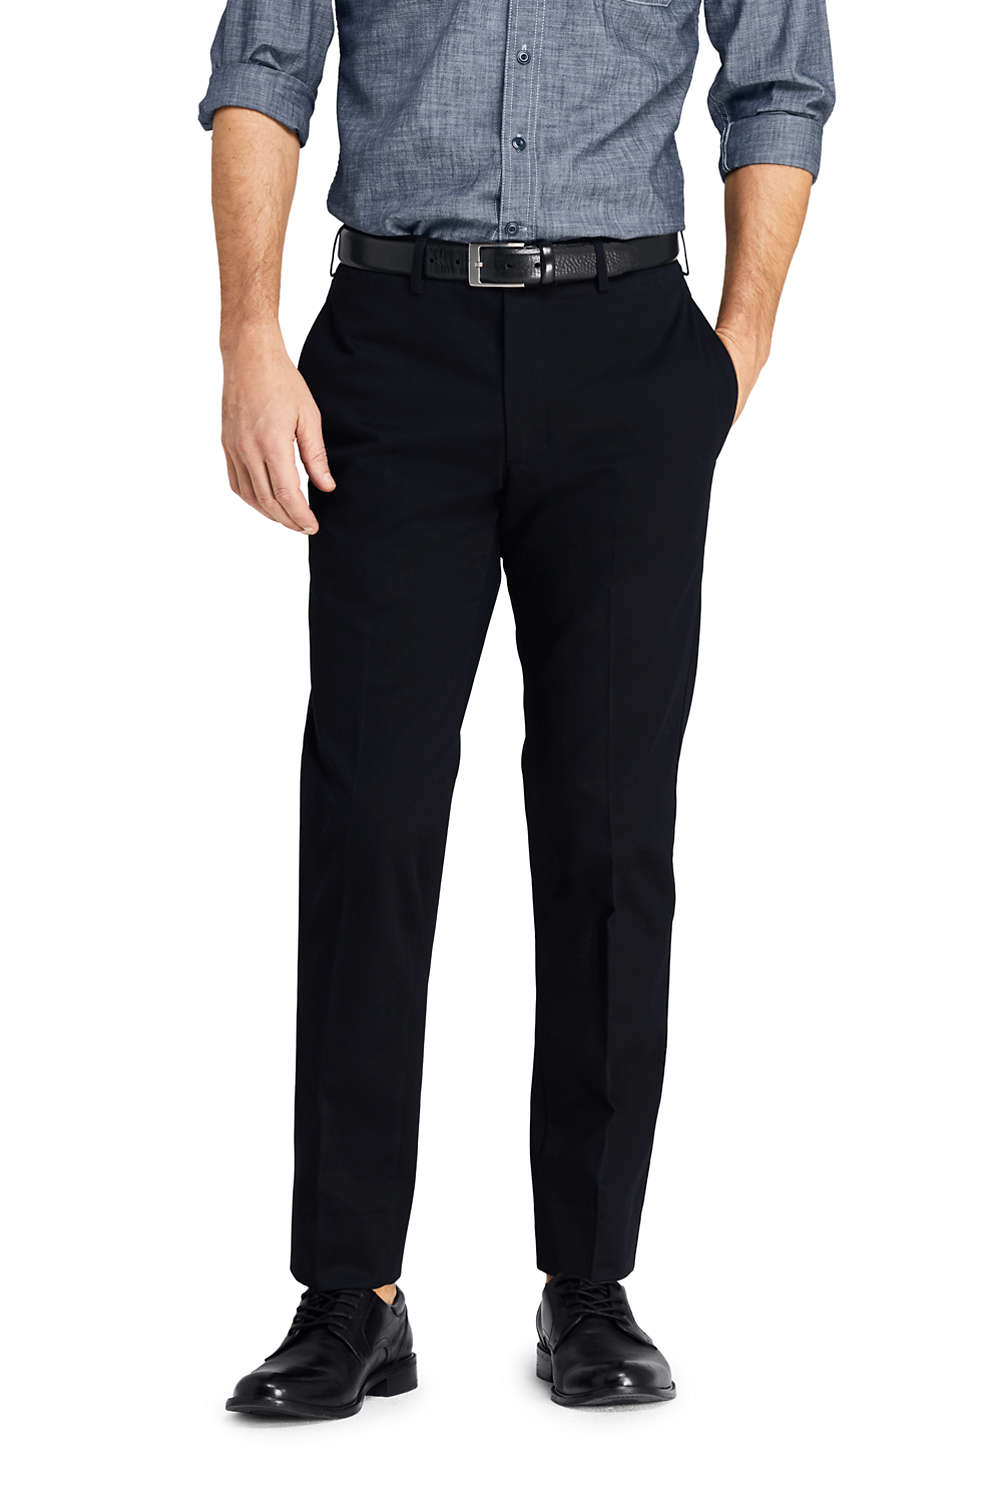 a51402f04feb0 Men's Slim Fit Plain Front No Iron Chino Pants from Lands' End